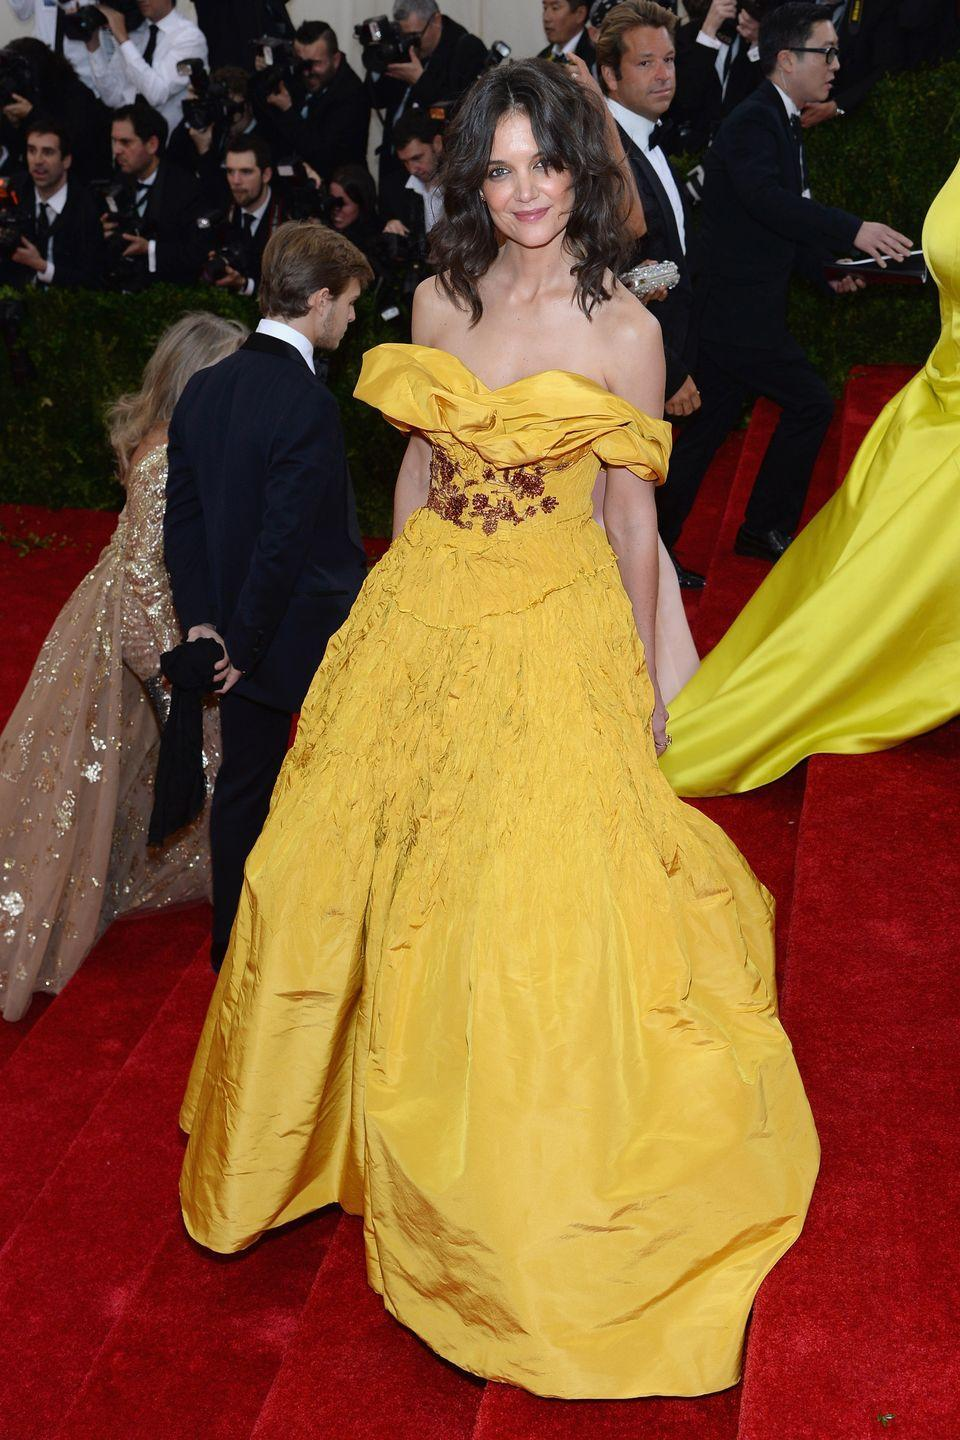 <p>Katie Holmes's 2014 Met Gala gown looks like it was taken straight from <em>Beauty and the Beast</em>.</p>